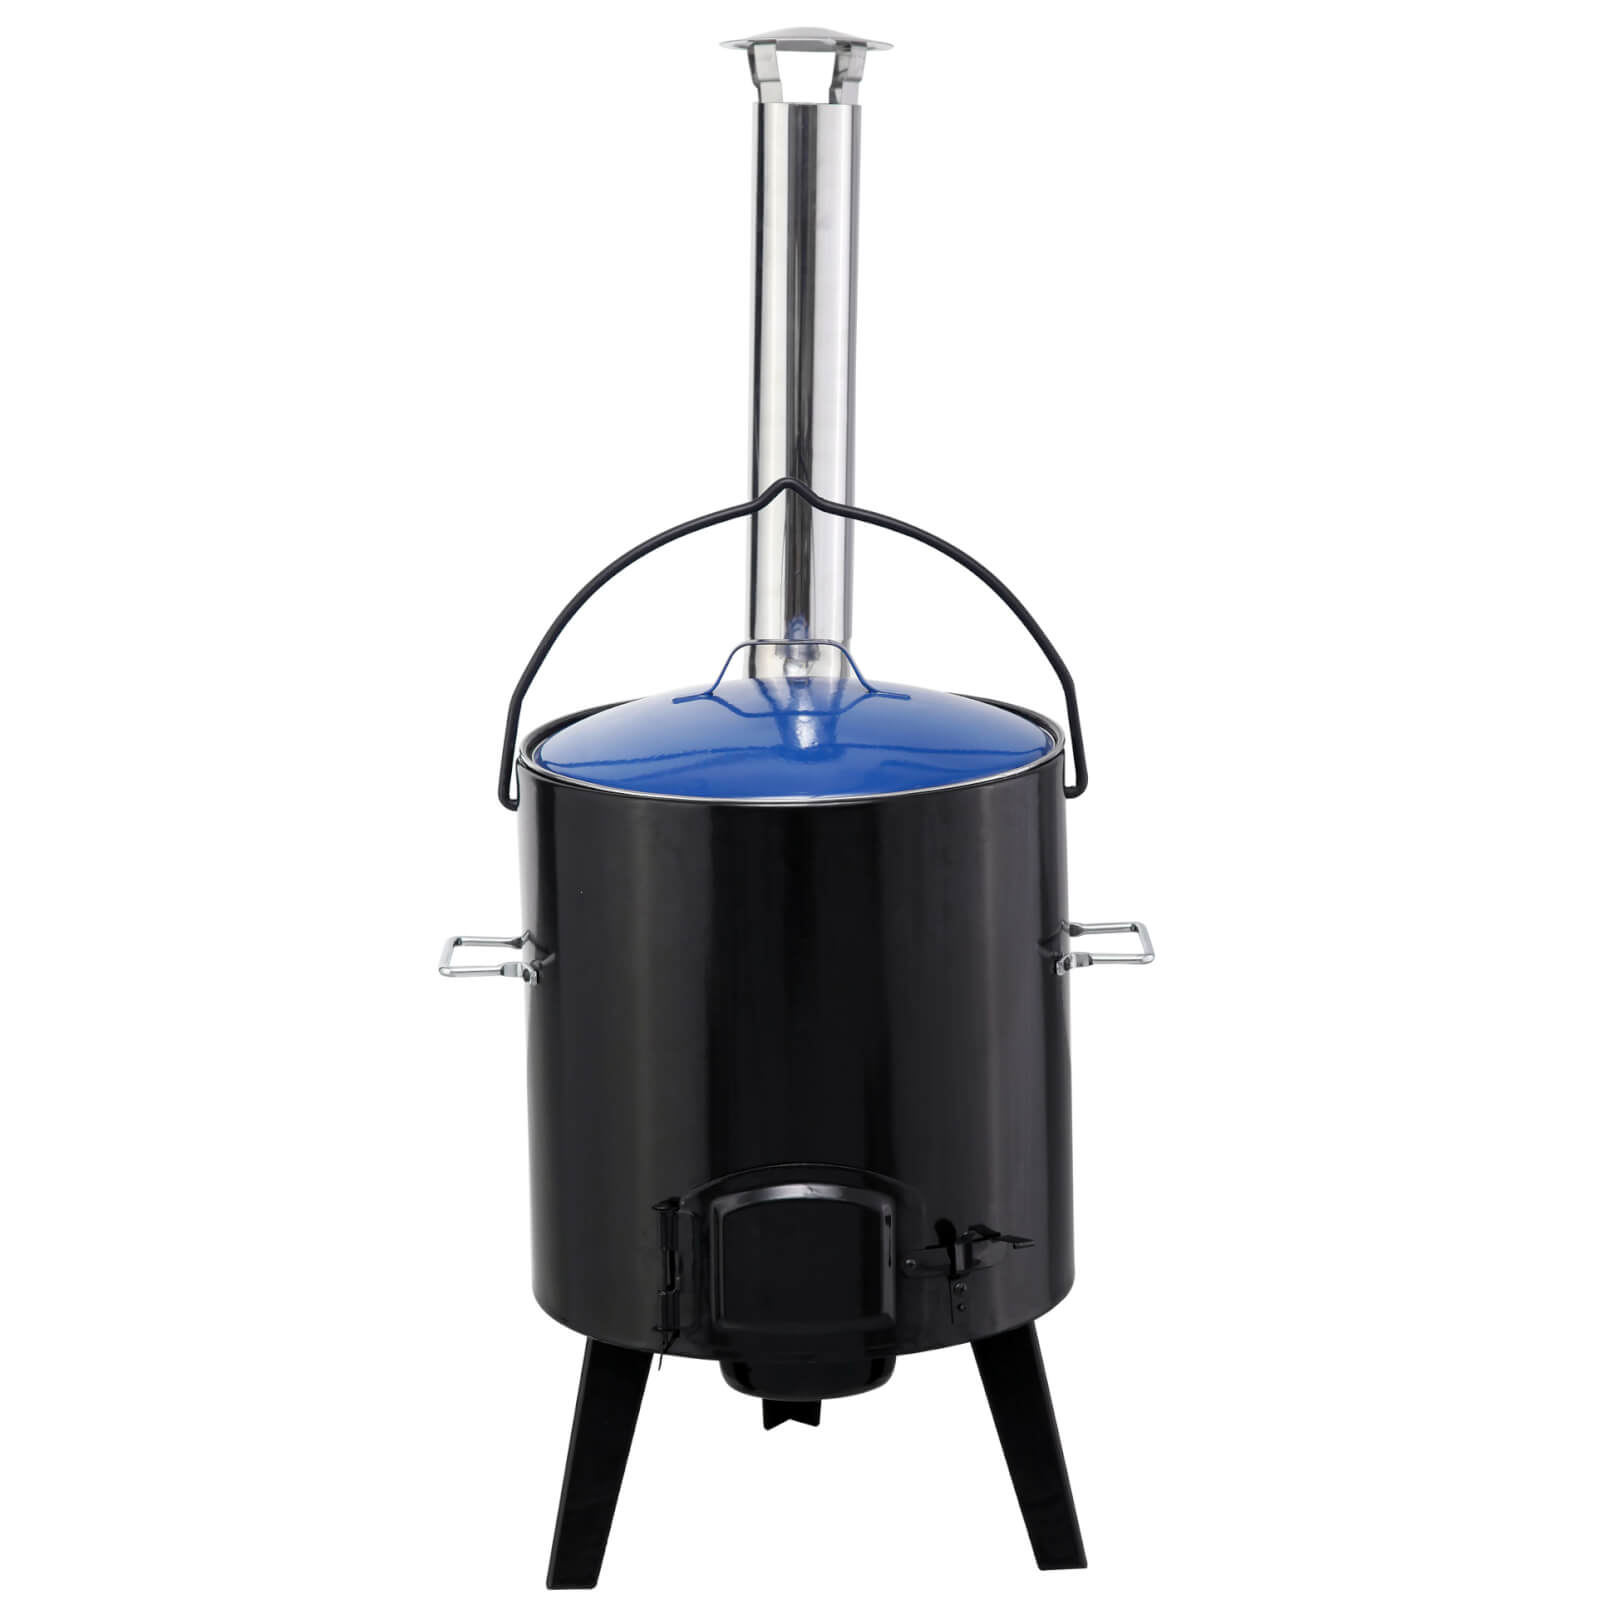 Tepro Waverley Outdoor Cooking Pot Oven